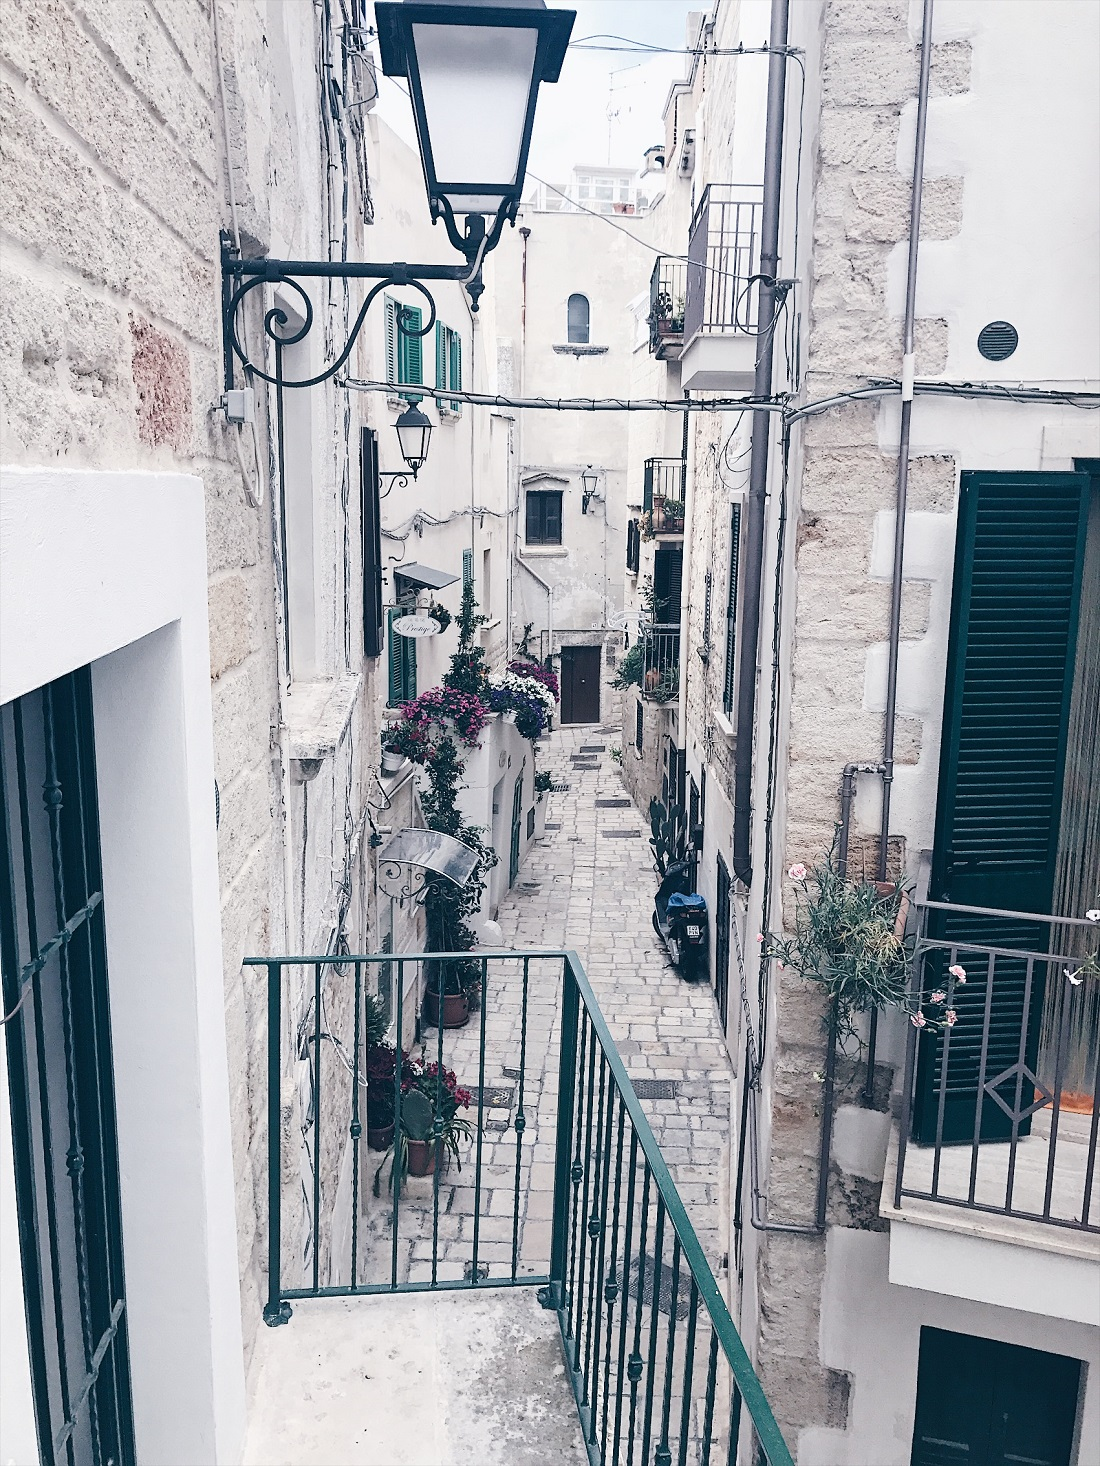 @projectfairytale: 6 Things to do in Bari